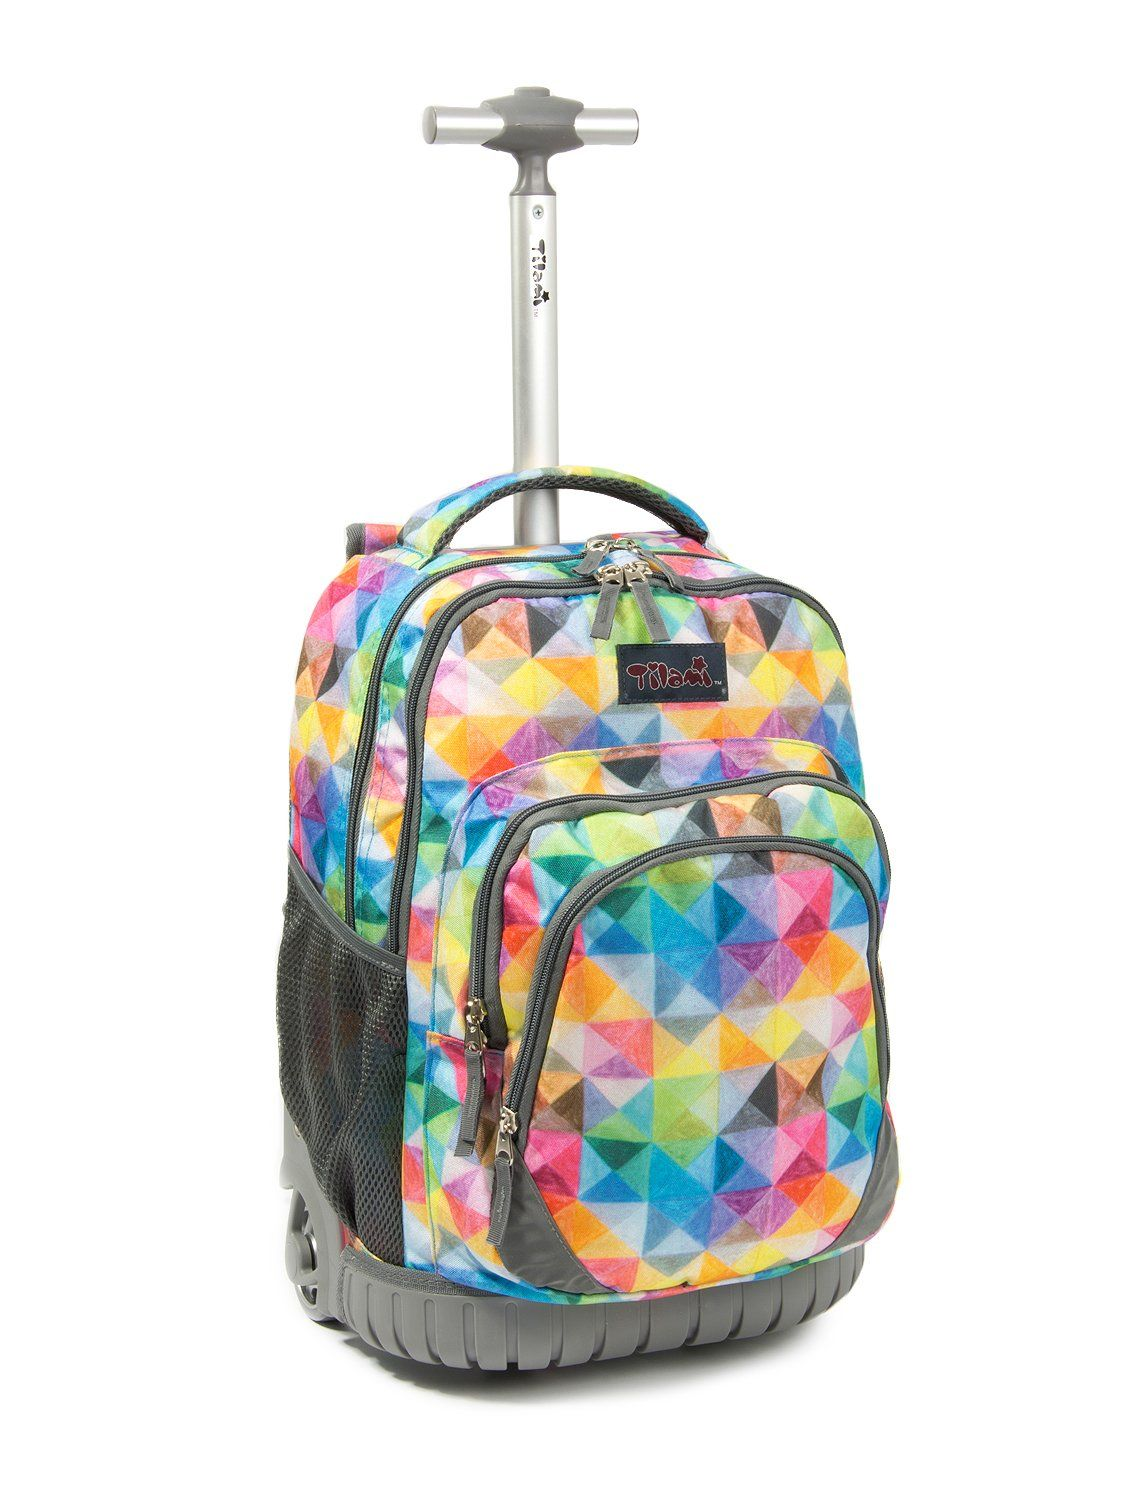 9d325805bd44 ... brand new b8176 0ec37 Tilami Rolling Backpack Armor Luggage School  Travel Book Laptop 18 Inch Multifunction ...